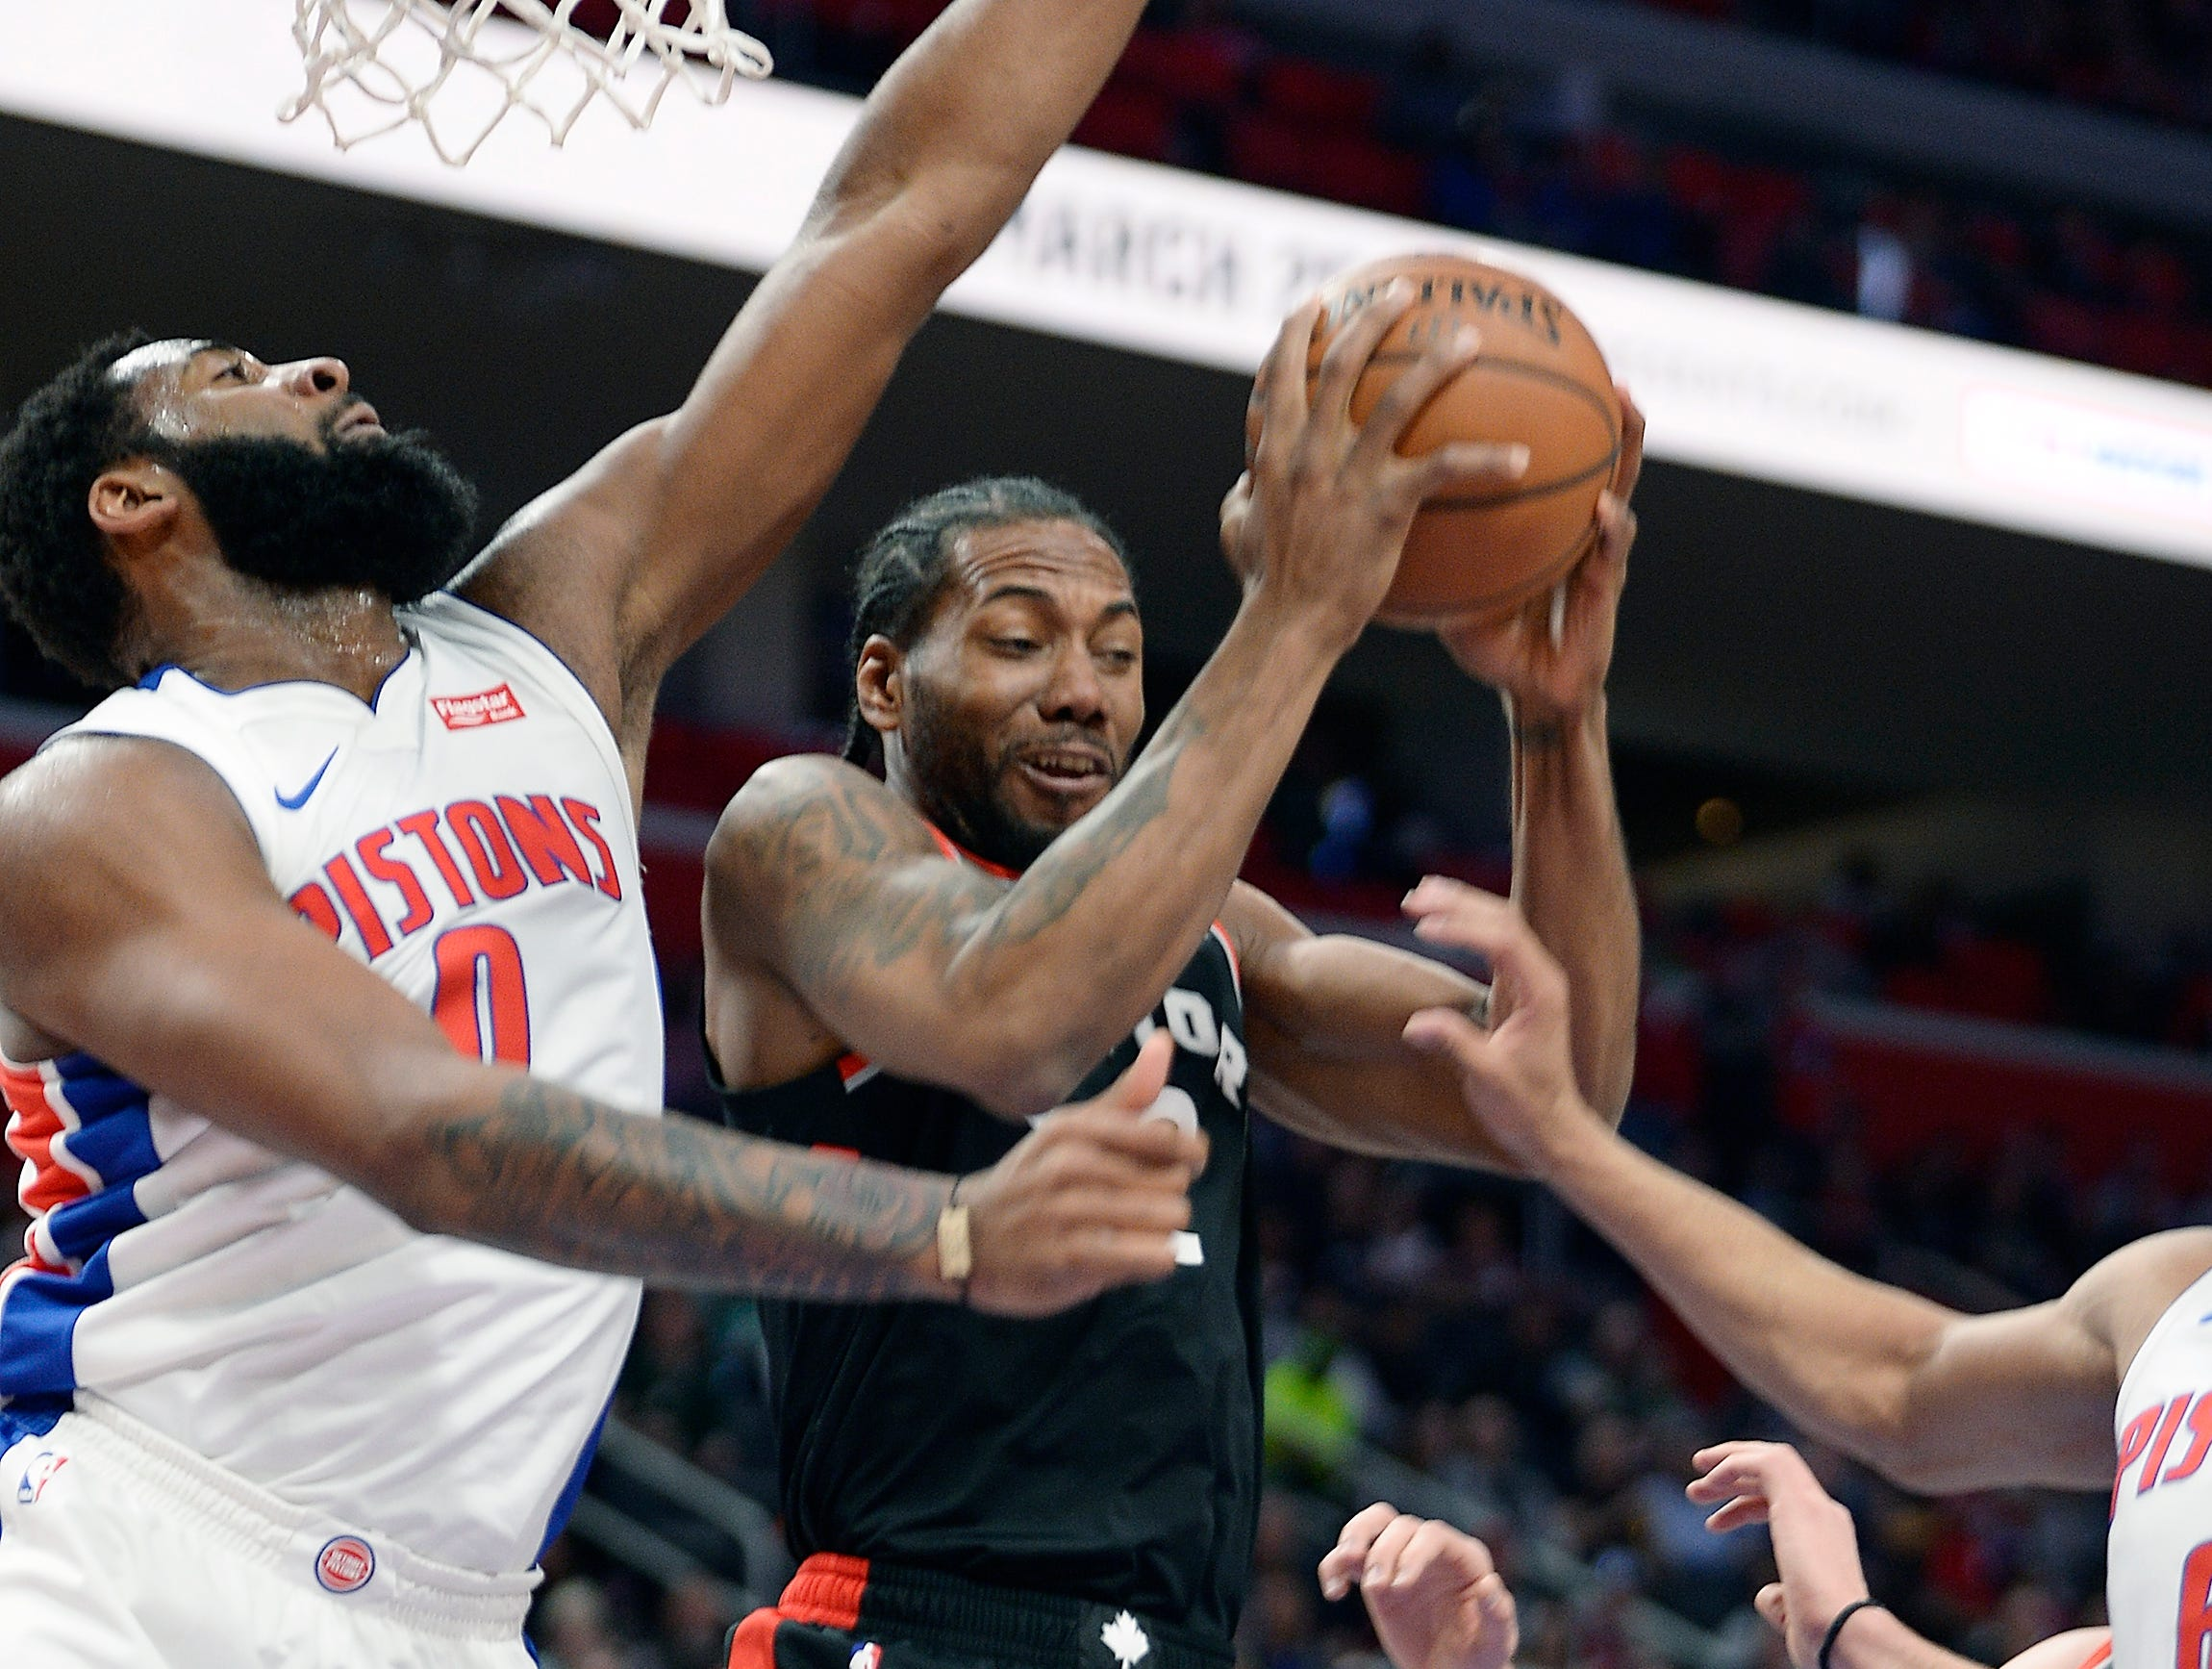 Pistons' Andre Drummond defends the Raptors' Kawhi Leonard in the first quarter.